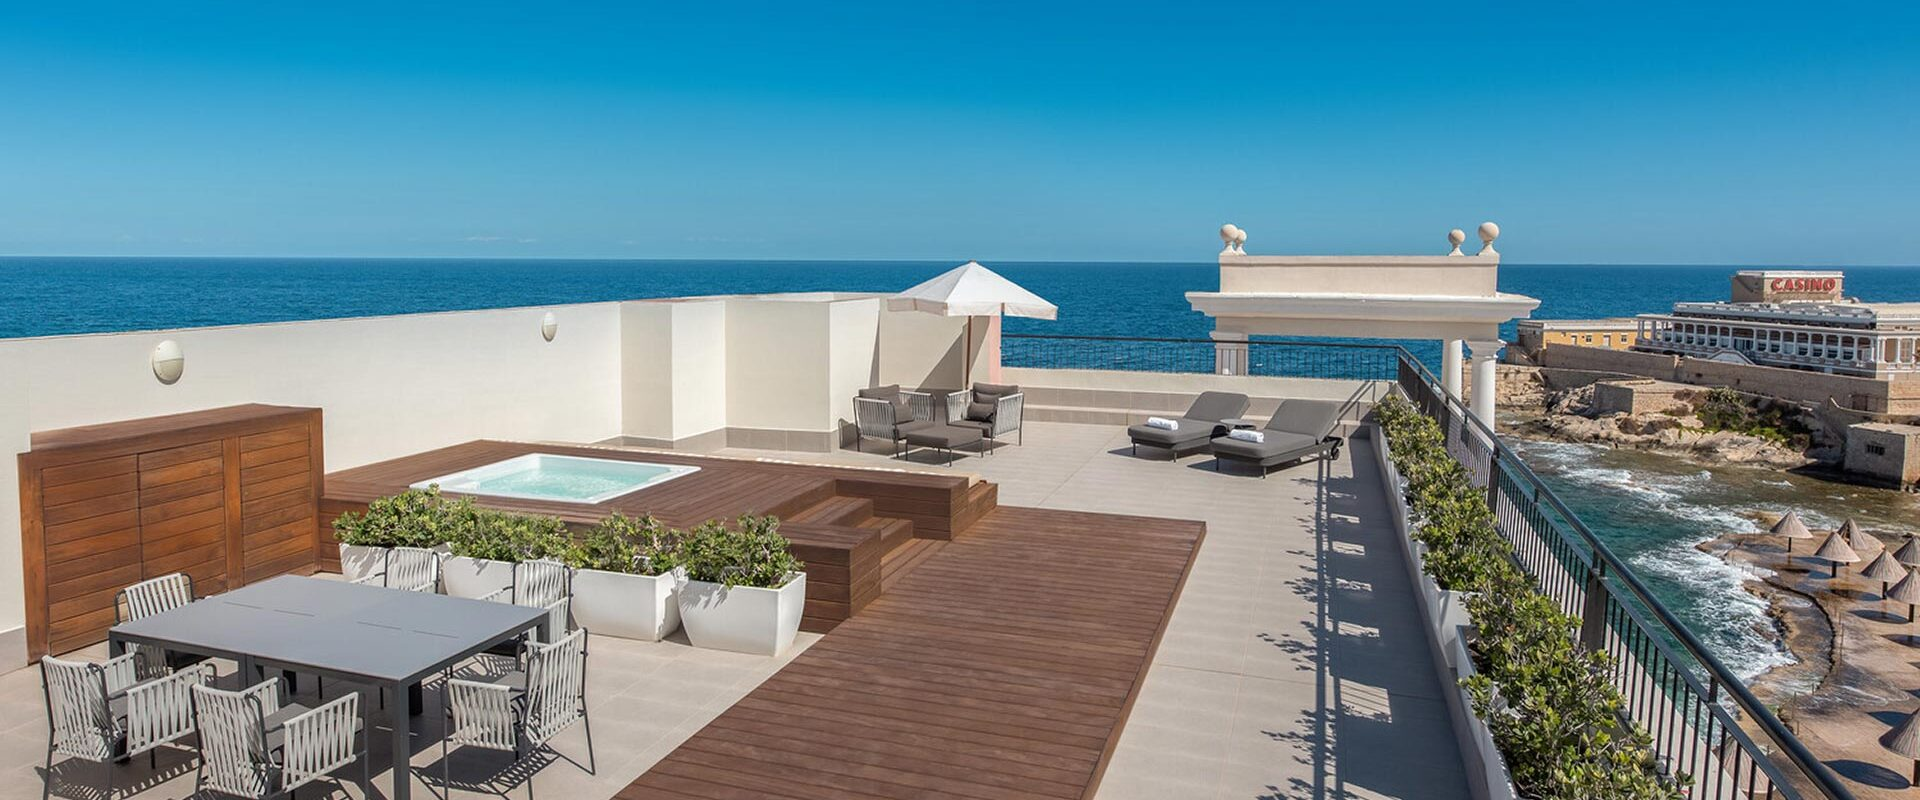 large private terrace outside of a luxury ocean-side suite with a wooden walk-way to a hot tub and an outdoor table and chairs set